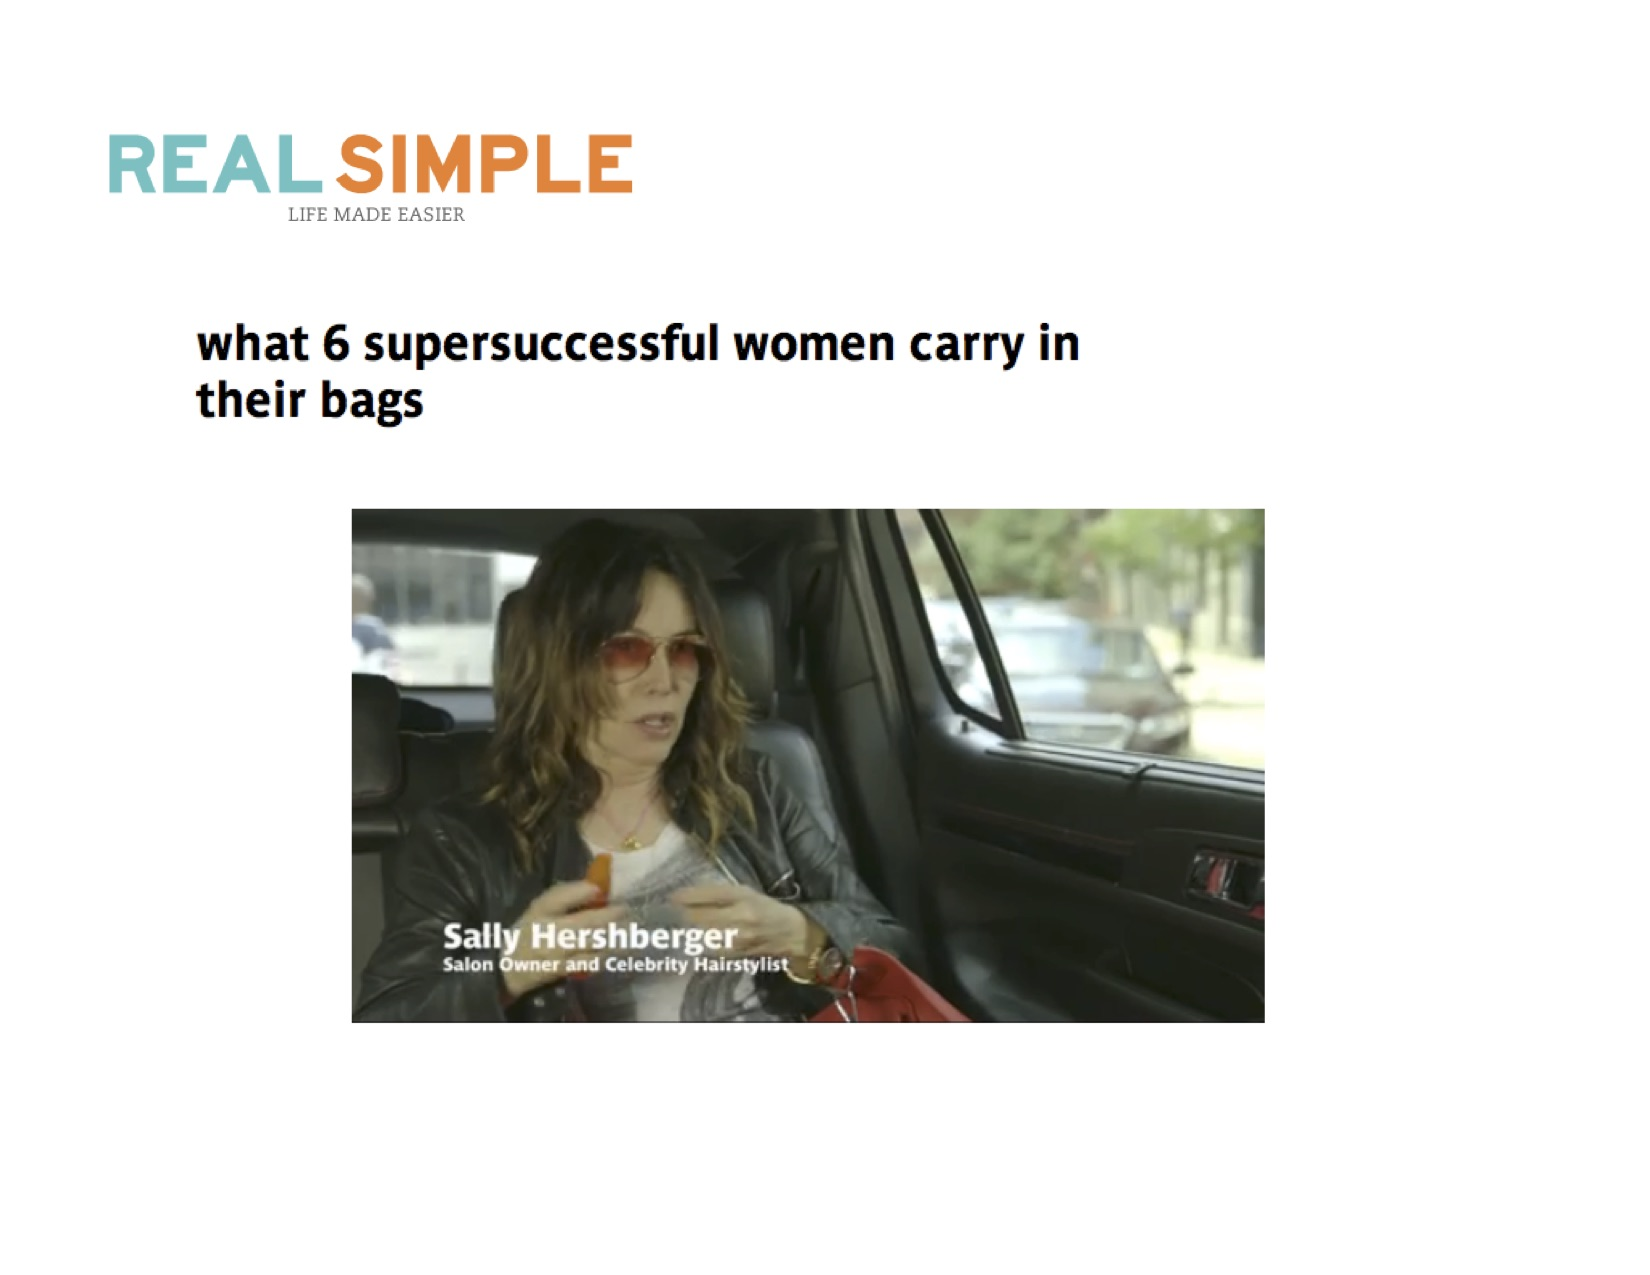 Sally Hershberger - Realsimple.com#2 - August 2014.jpeg